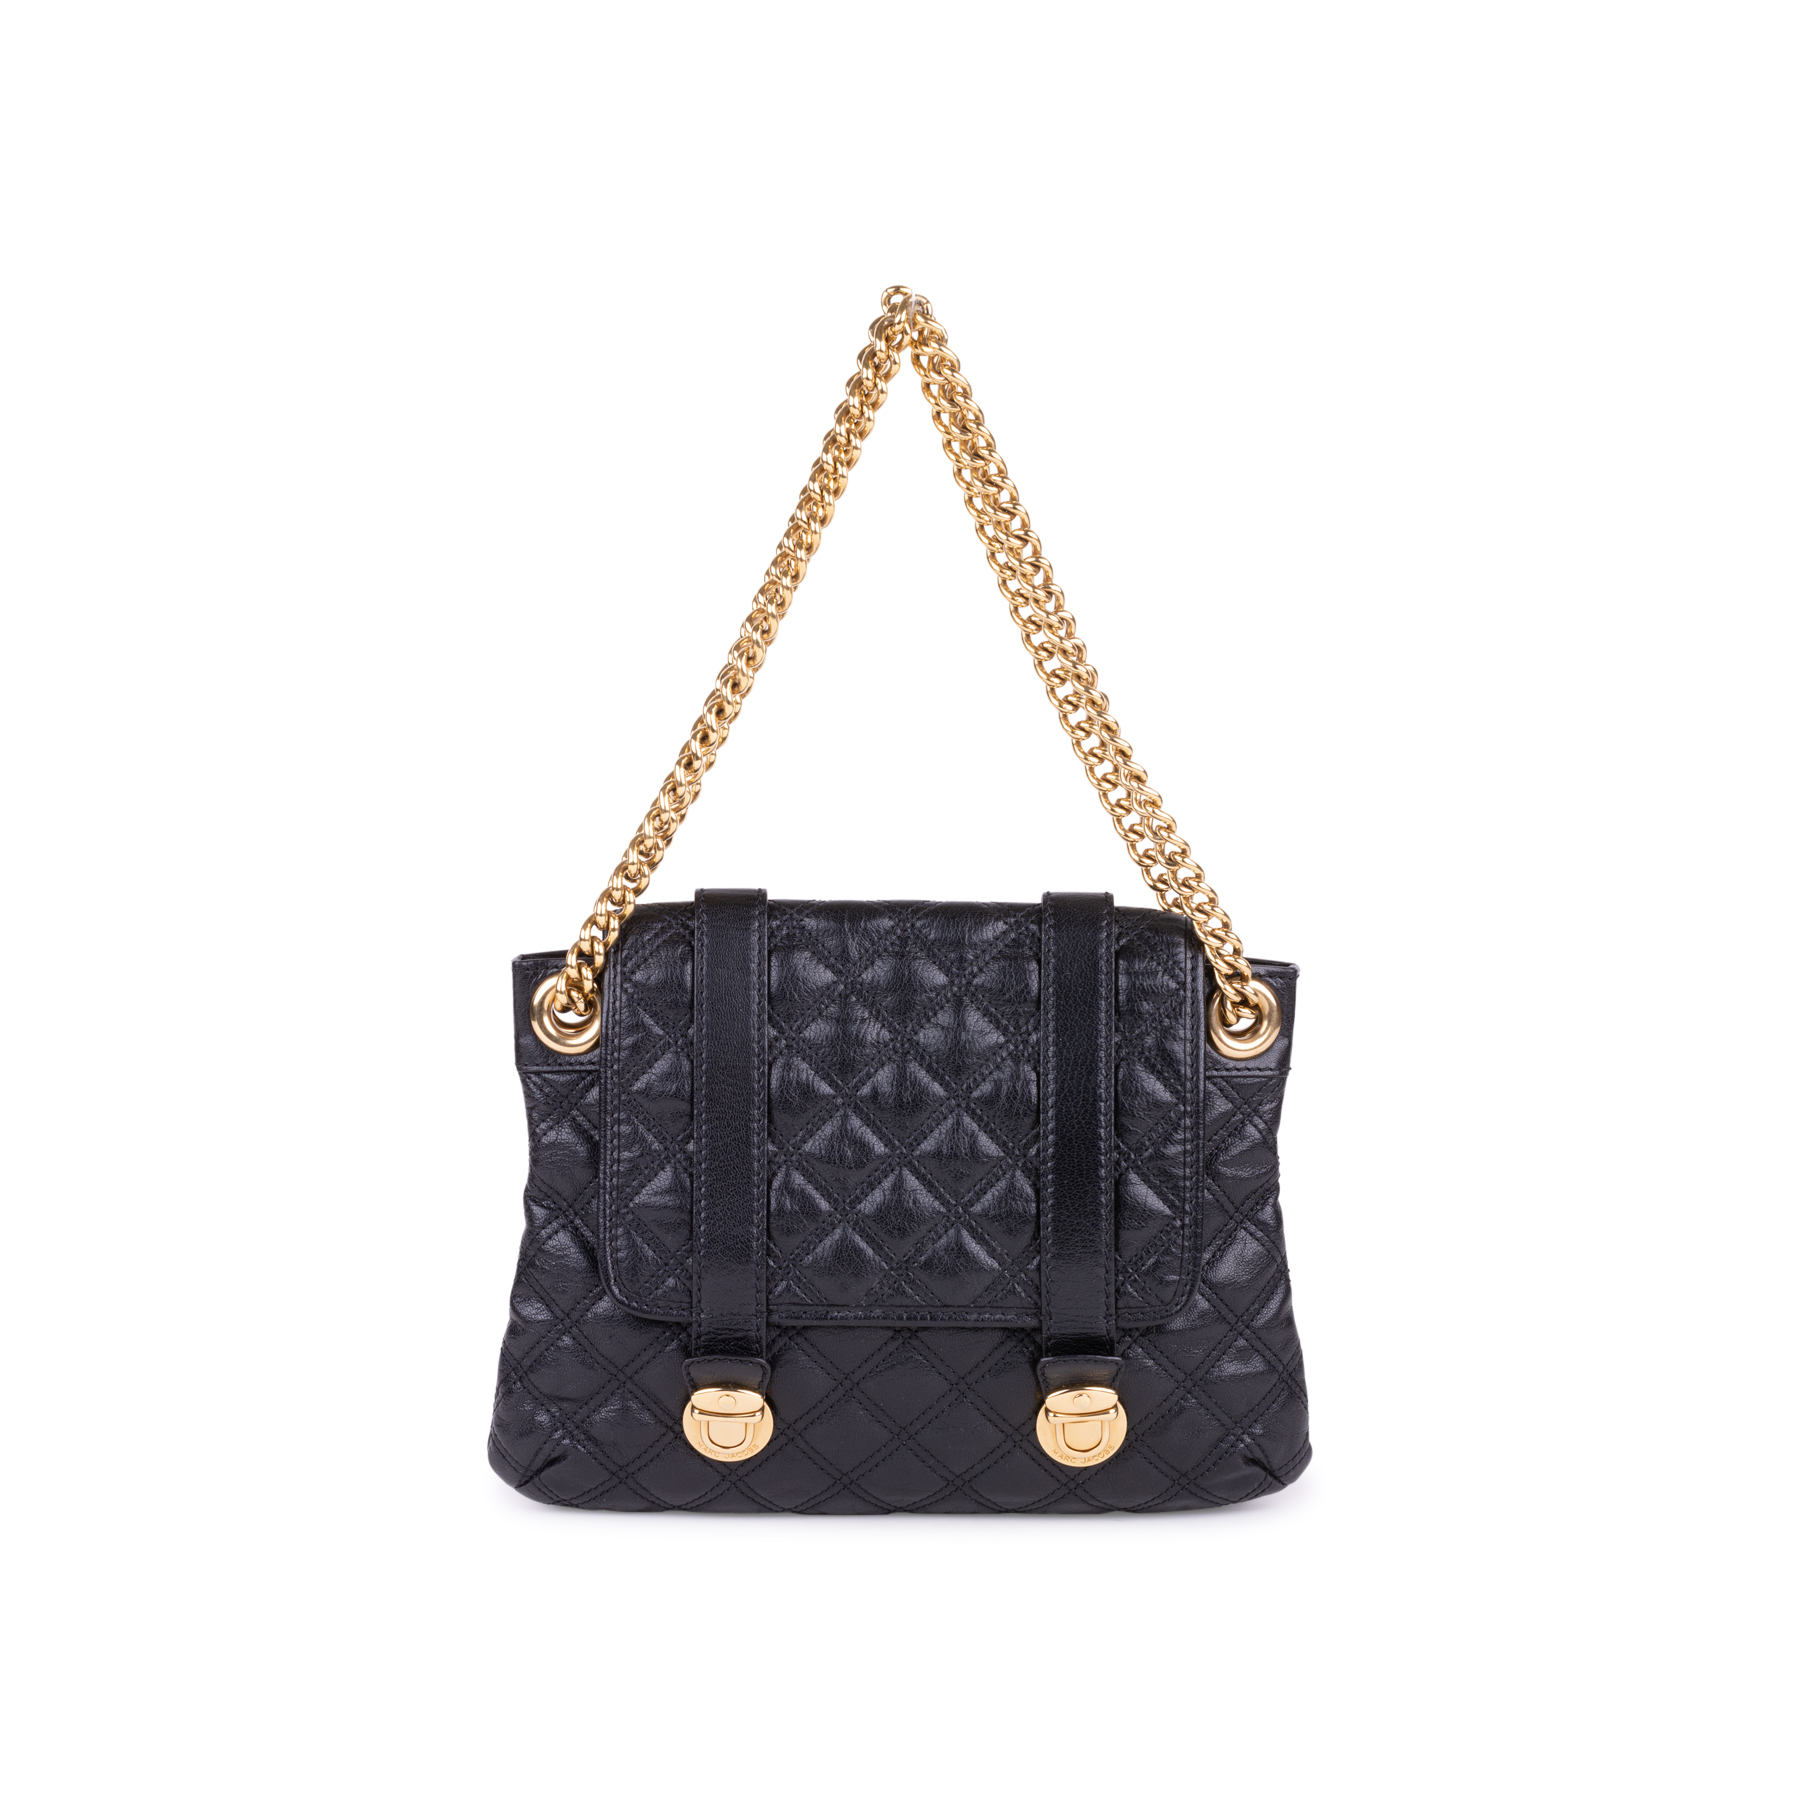 Authentic Pre Owned Marc Jacobs Quilted Single Flap Shoulder Bag db6b5f6c03b1b